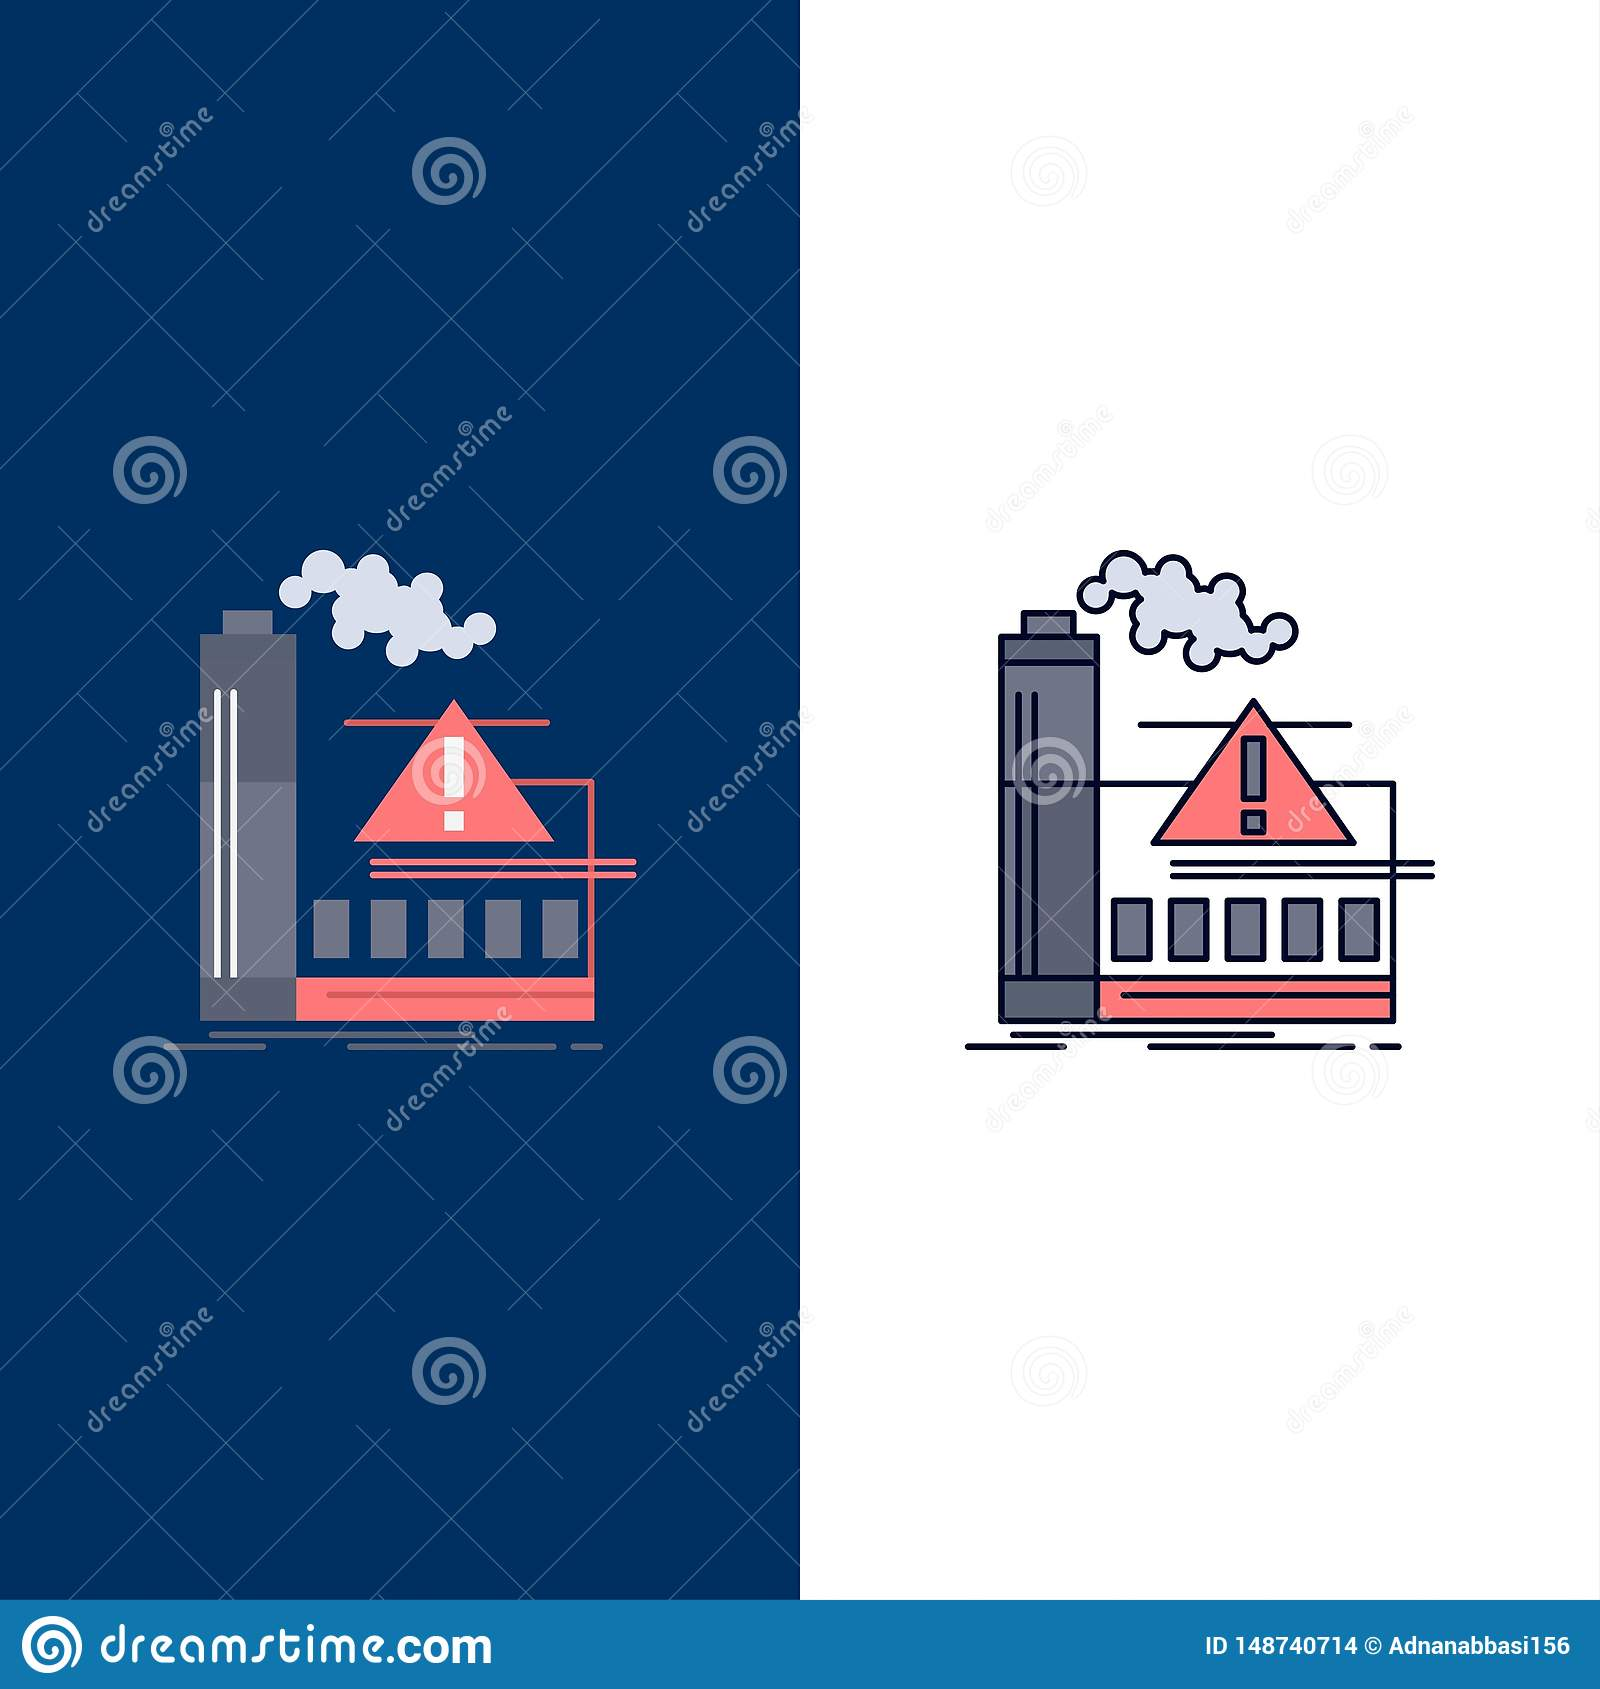 pollution, Factory, Air, Alert, industry Flat Color Icon Vector